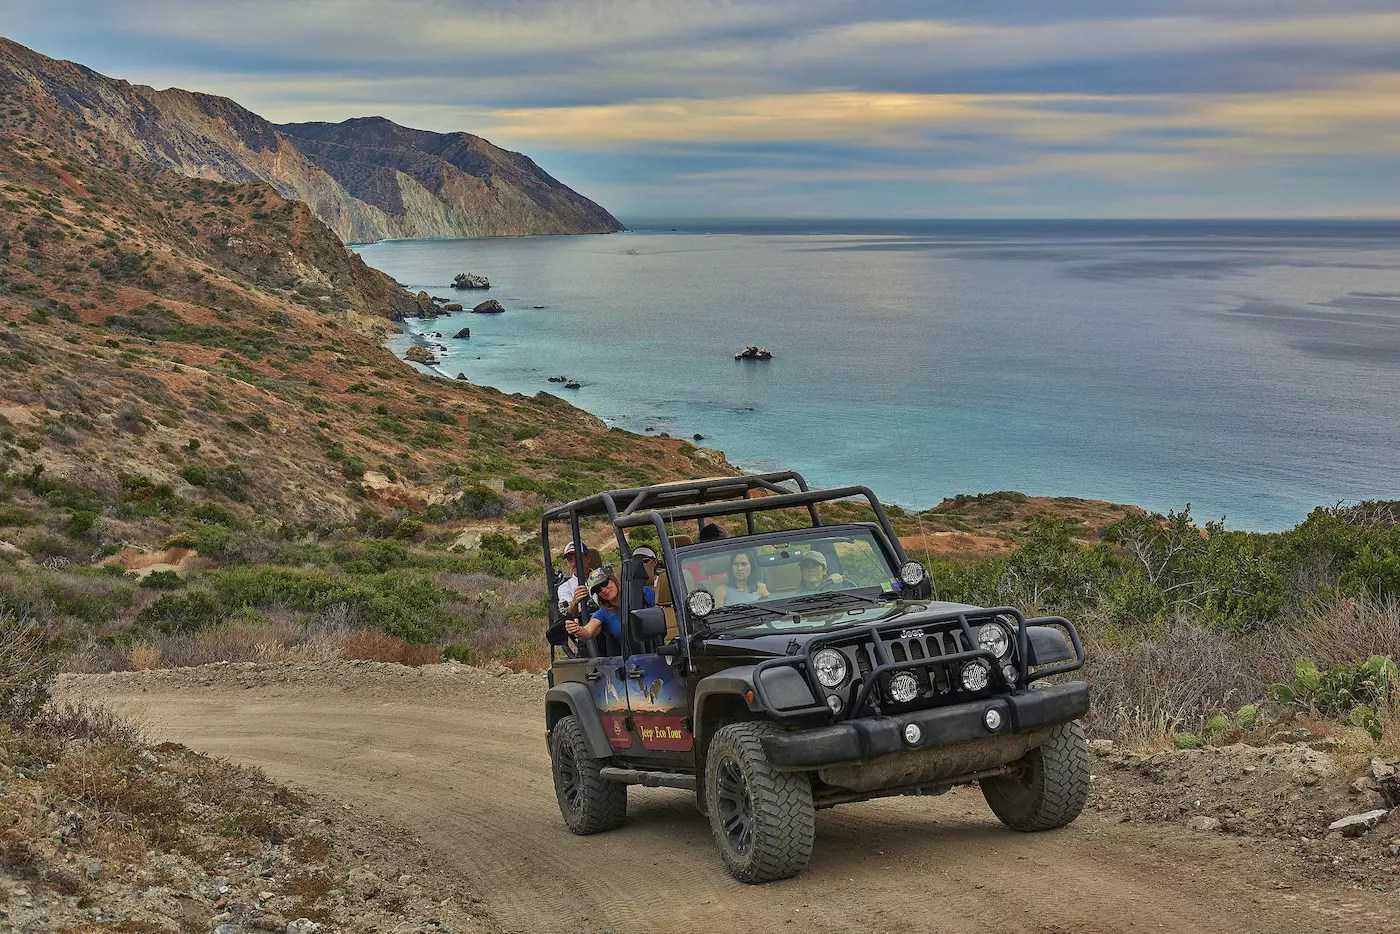 Photography Provided By: Catalina Island Conservancy